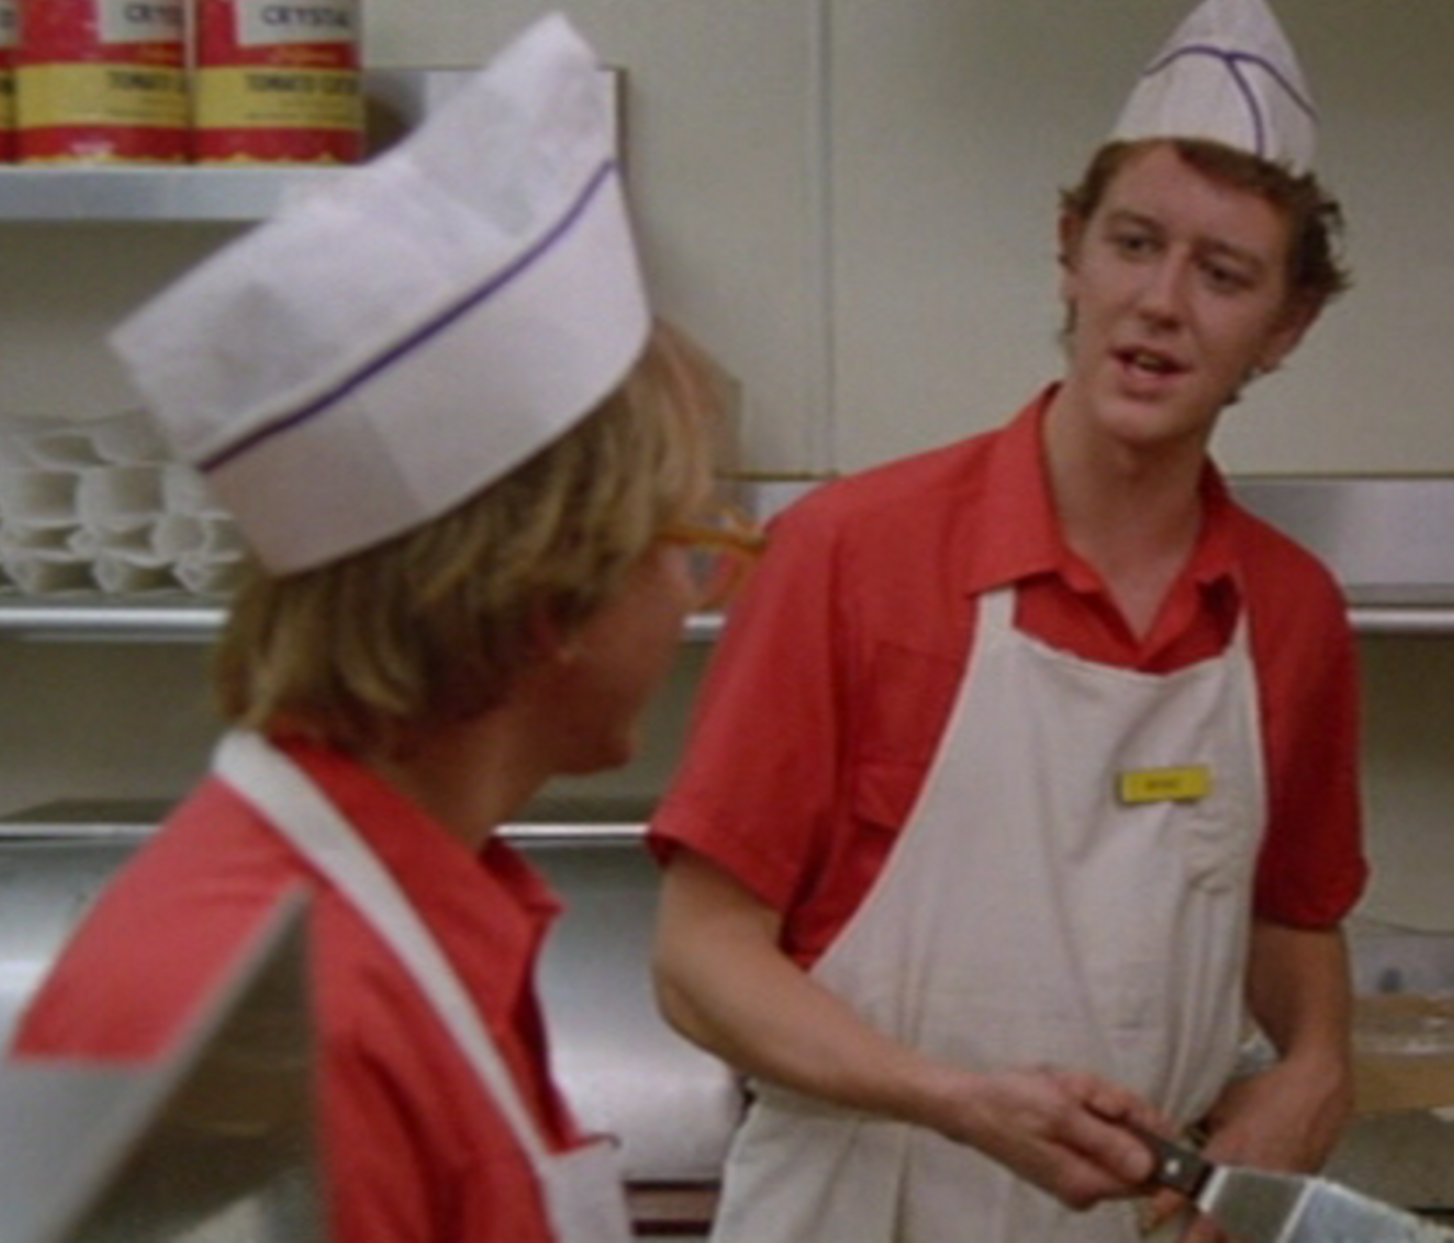 31 e1598359182277 20 Facts You Never Knew About Fast Times At Ridgemont High